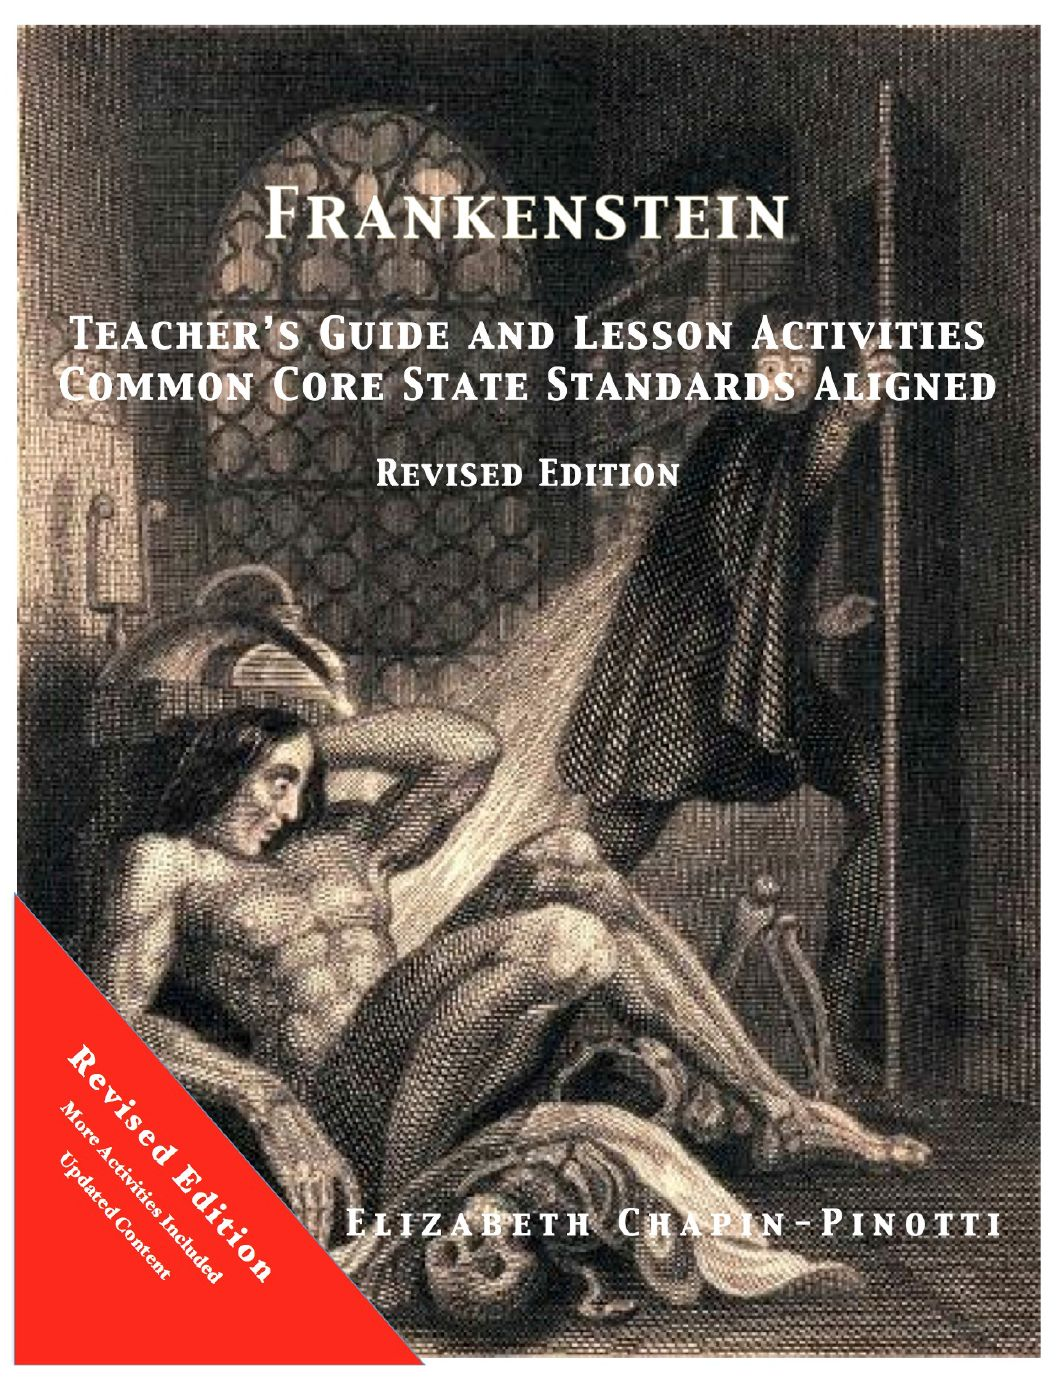 the lessons in the novel frankenstein by mary shelley The machine would accomplish this by storing previous lessons  through those times shelley wrote the novel frankenstein  frankenstein by mary shelley is.